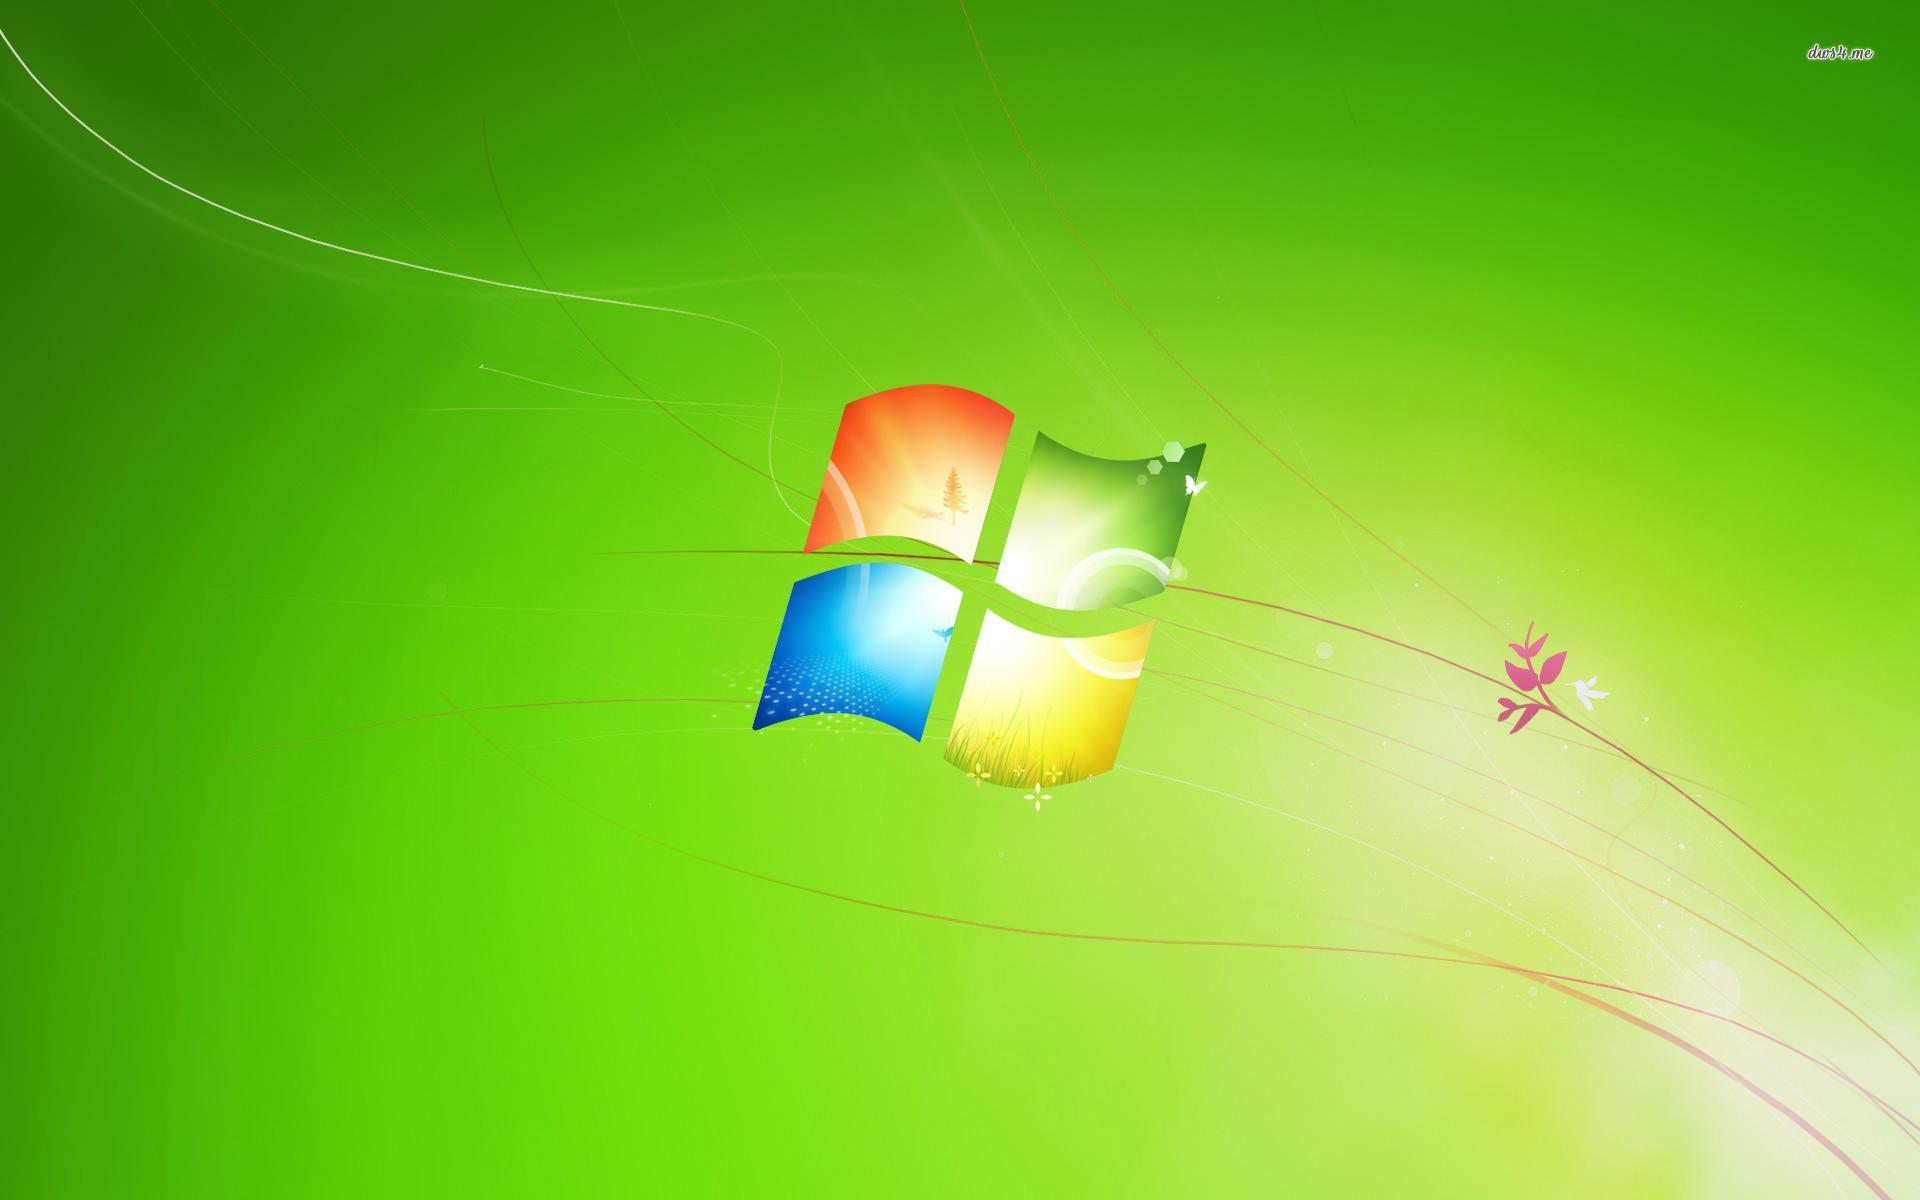 windows logo backgrounds Wallpapers HD Image 4867